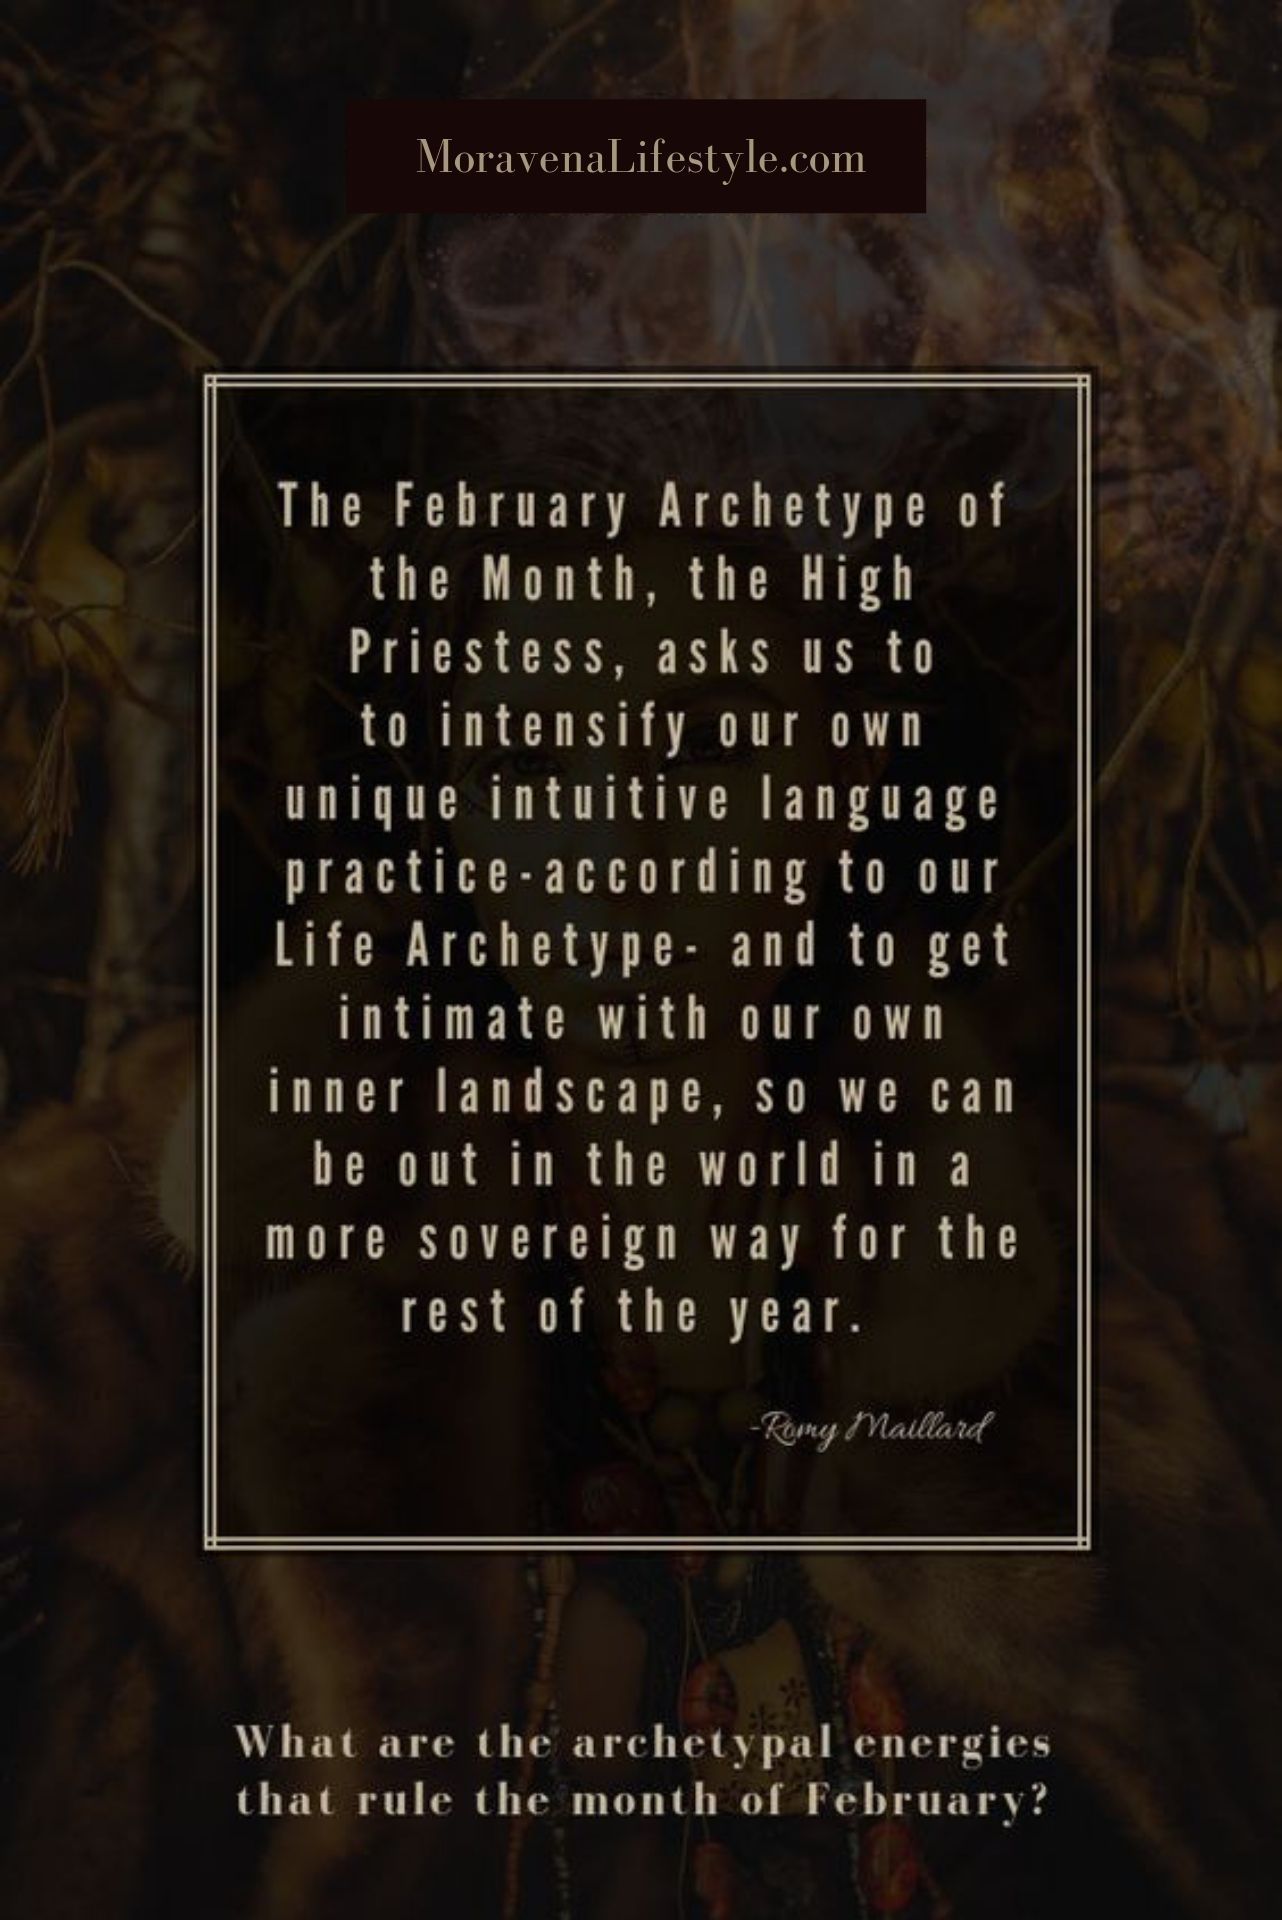 The Archetype of February asks us to apply intuitive observation - …followed by sustainable action.